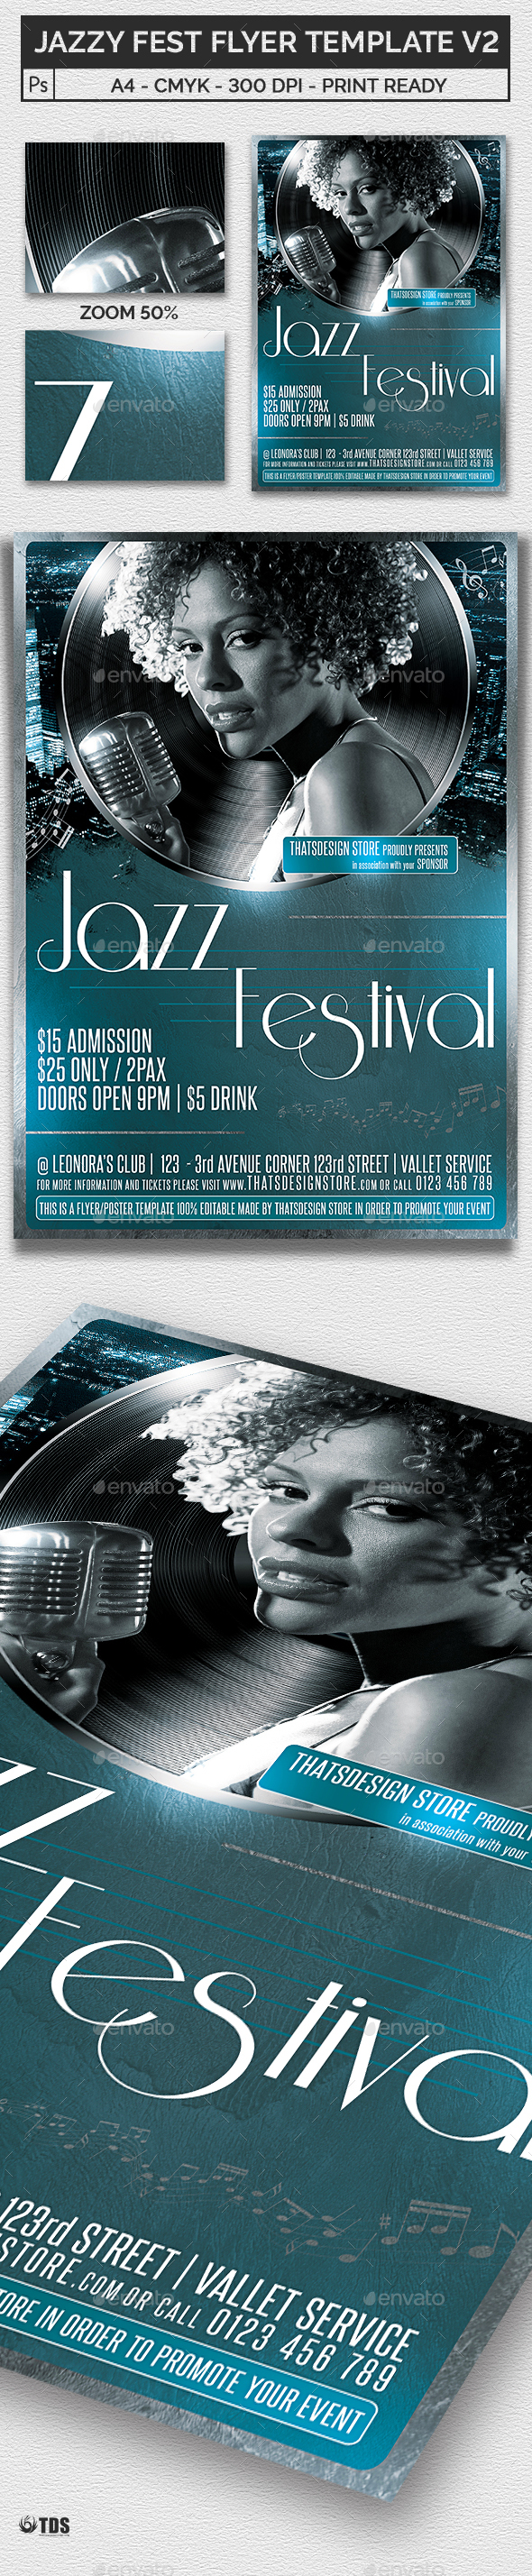 Jazzy Fest Flyer Template V2 - Concerts Events